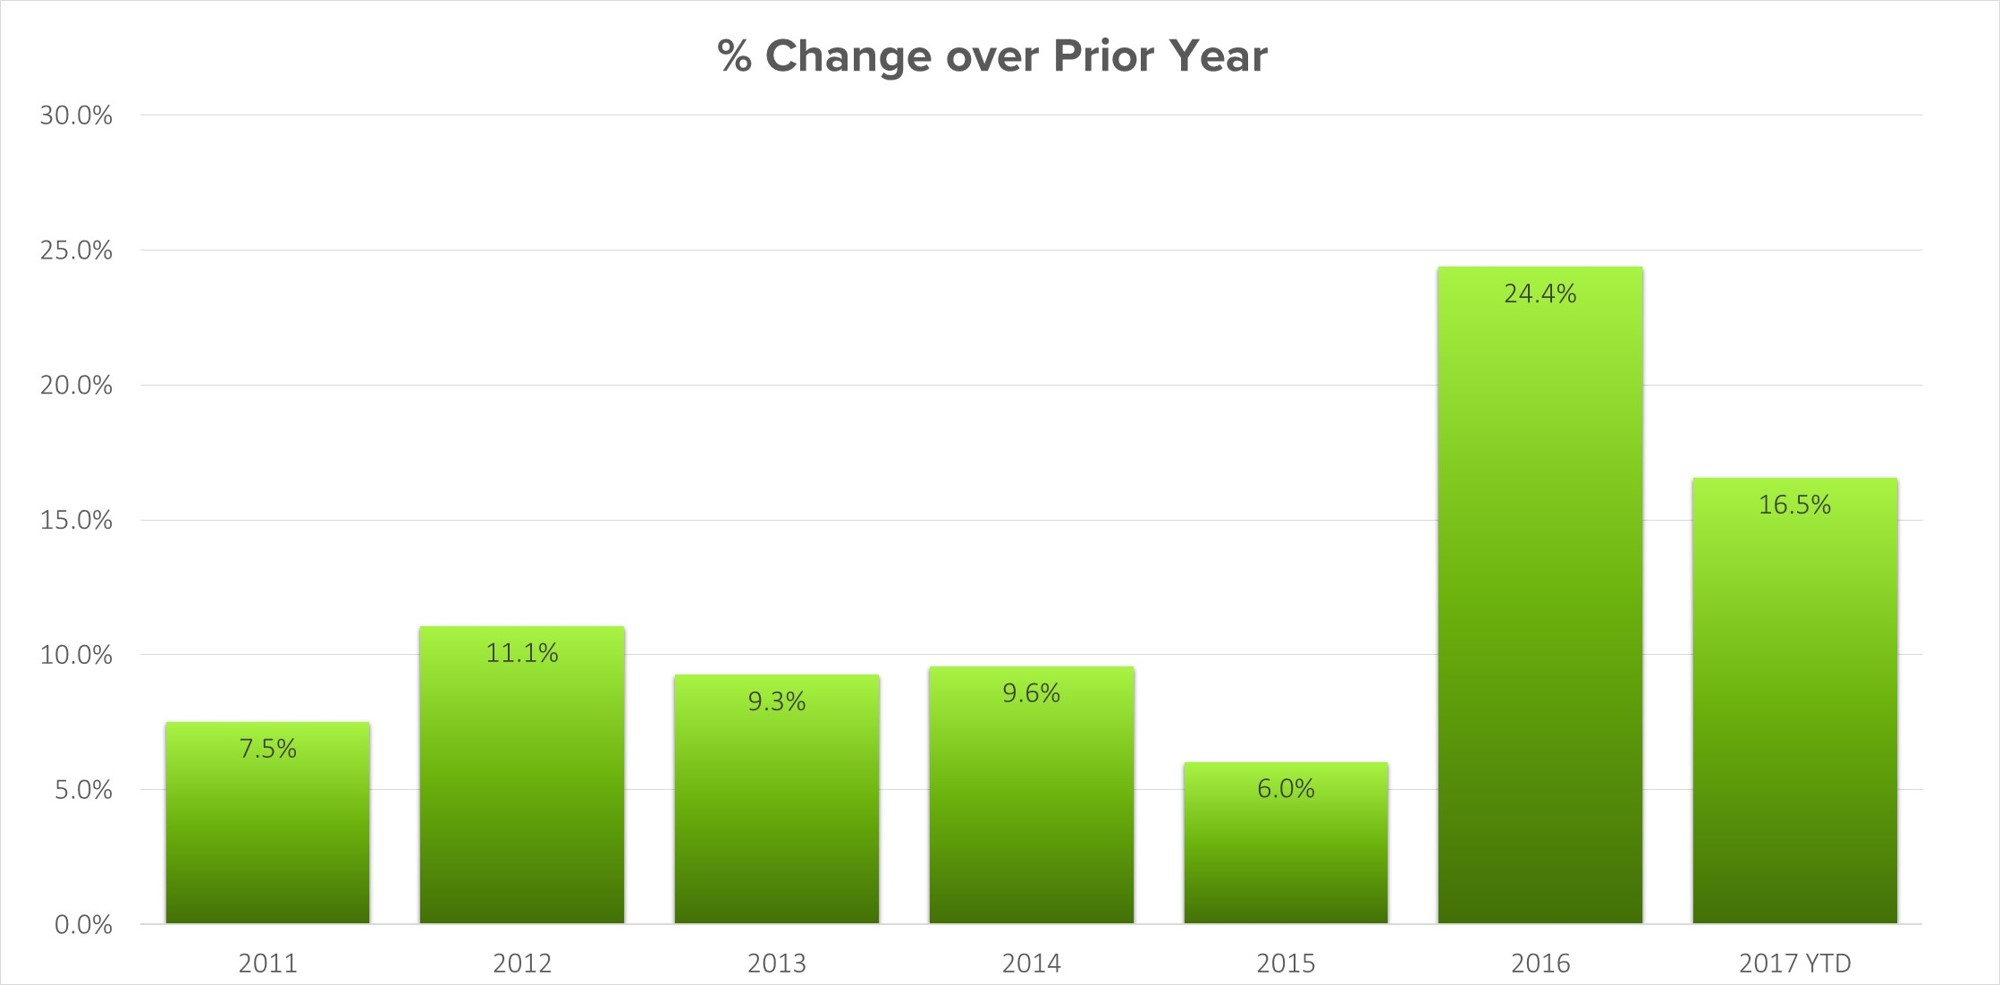 oakville-percentage-change-vs-prior-year.jpg